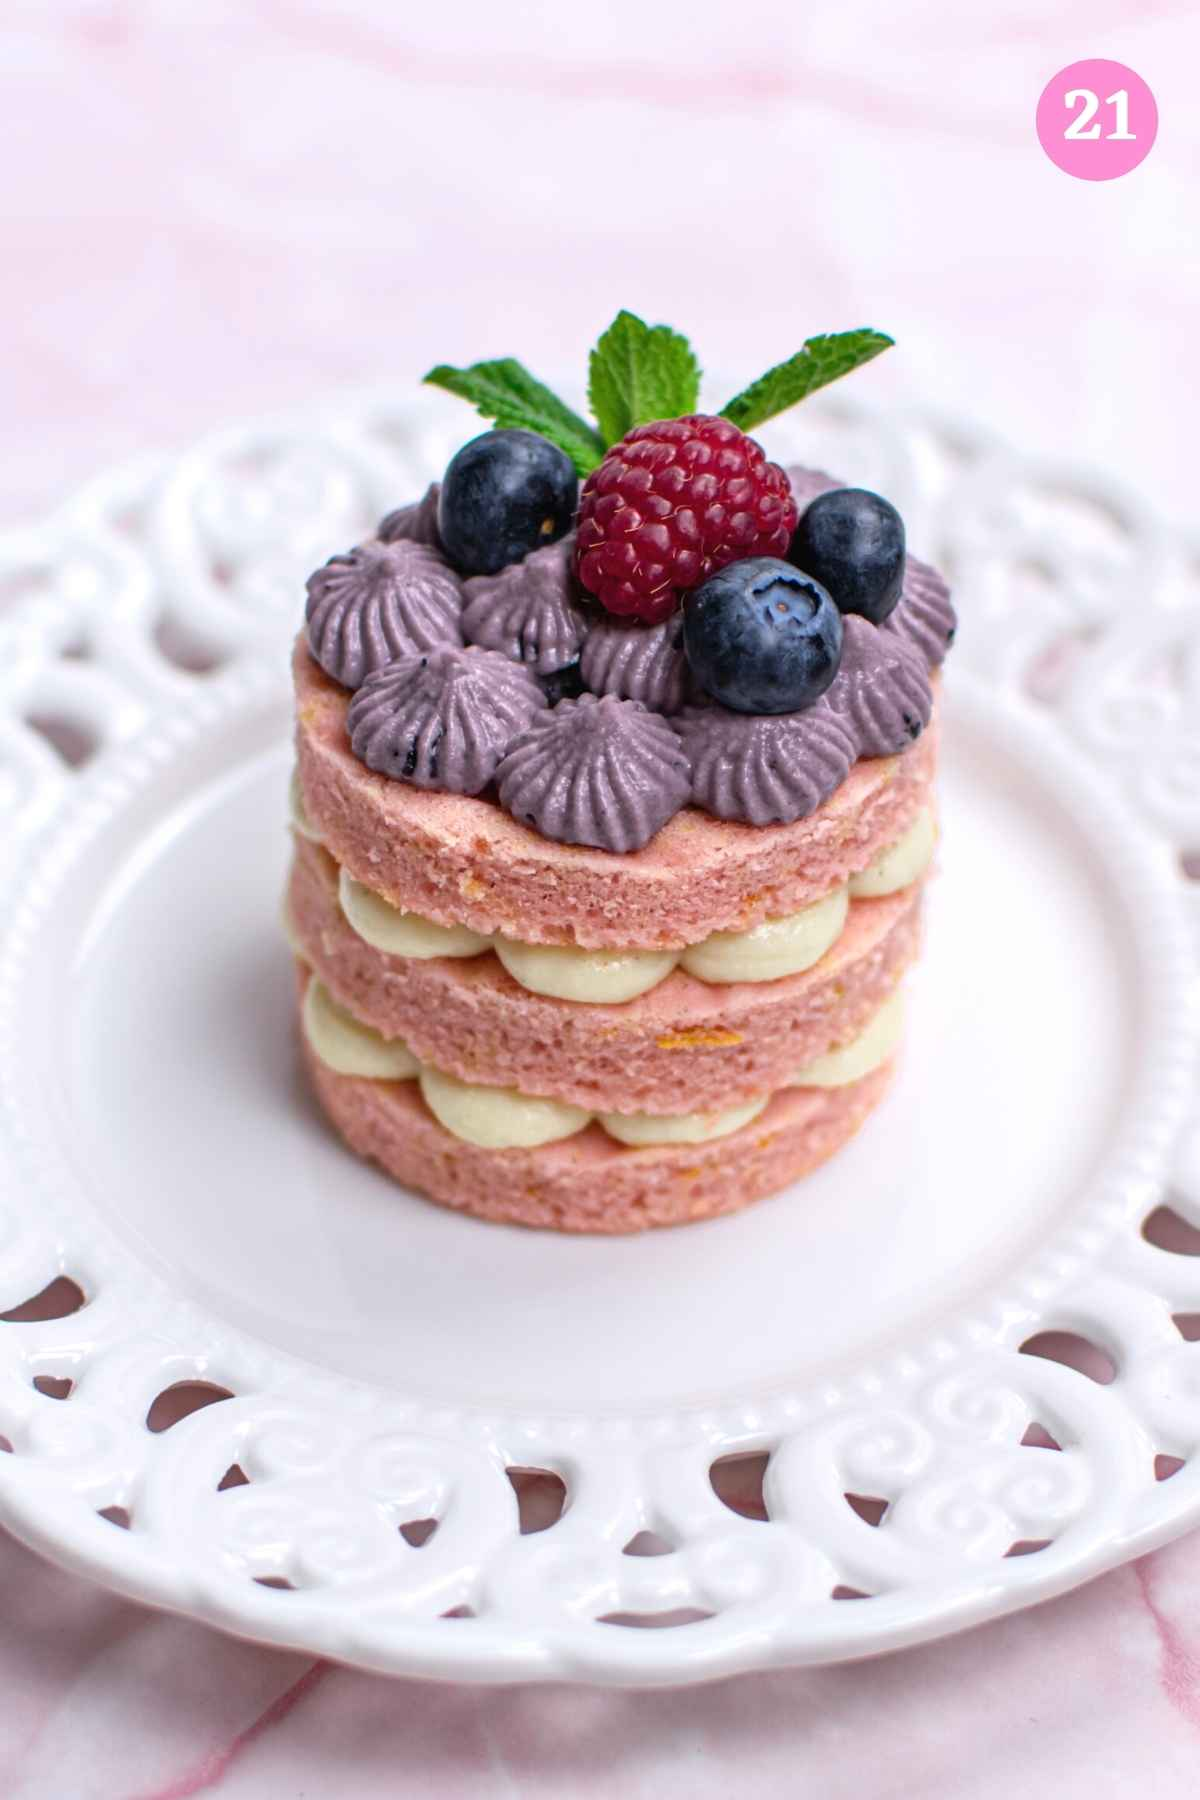 Fresh berries on top of mini cake as decoration